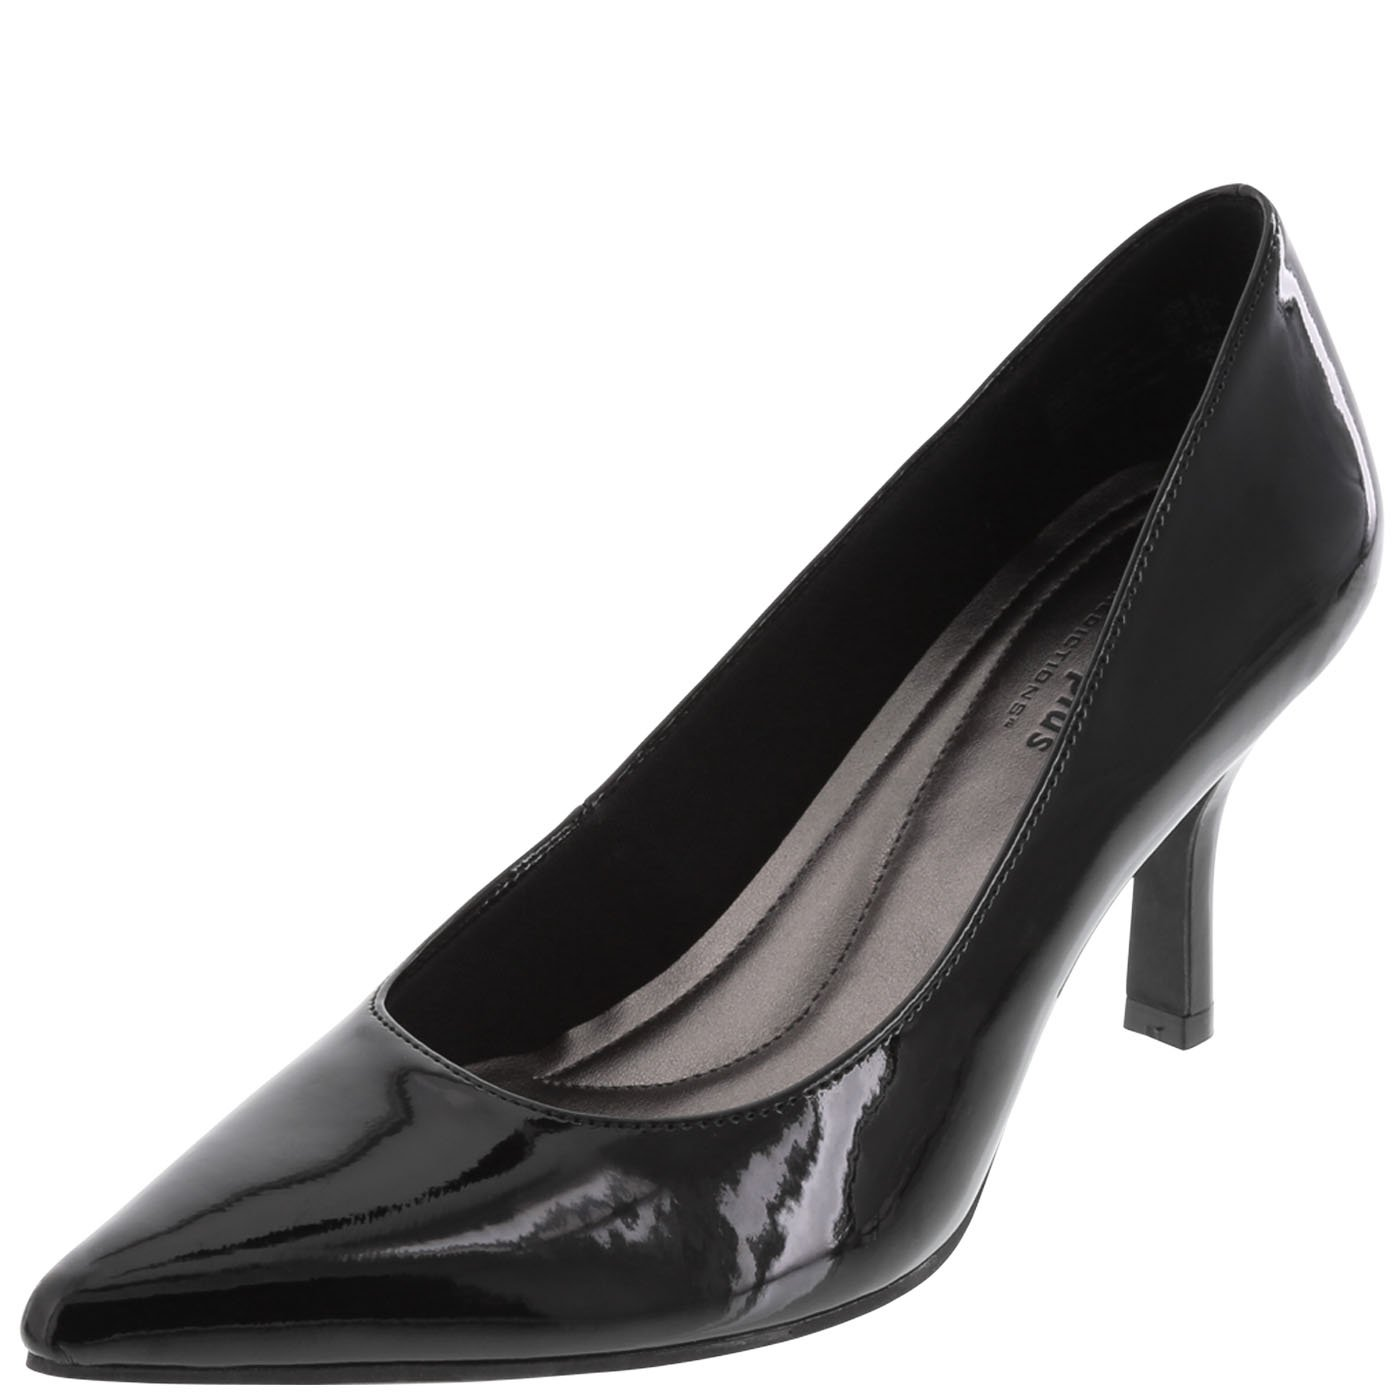 Predictions Comfort Plus by Women's Black Patent Janine Pointy Toe Pump 6.5 M US